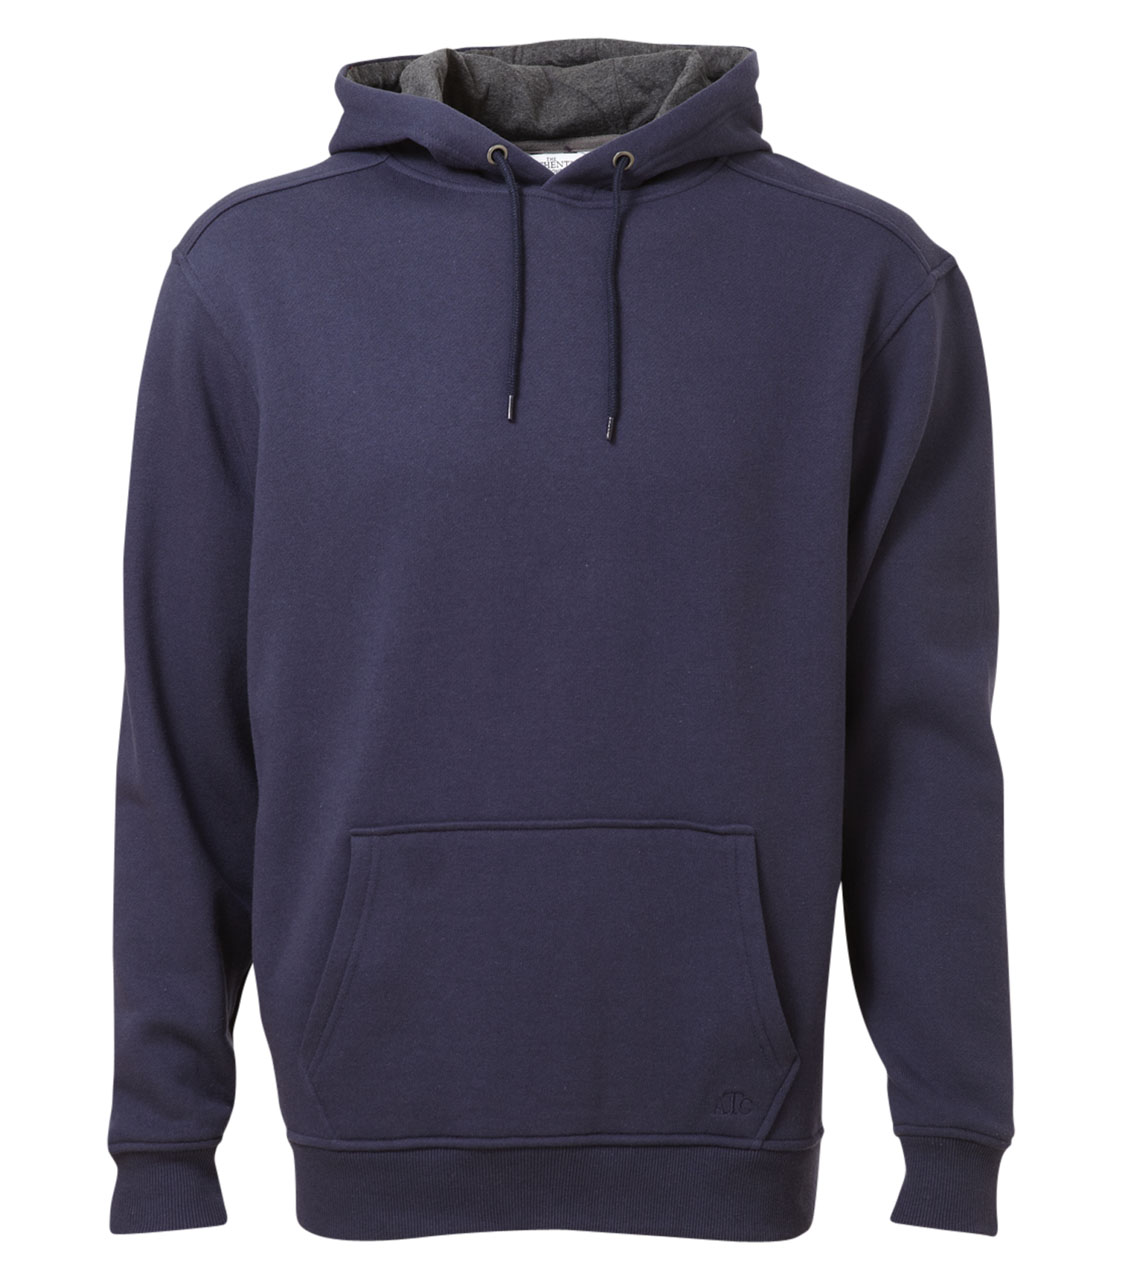 Picture of ATC Pro Fleece Hooded Sweatshirt